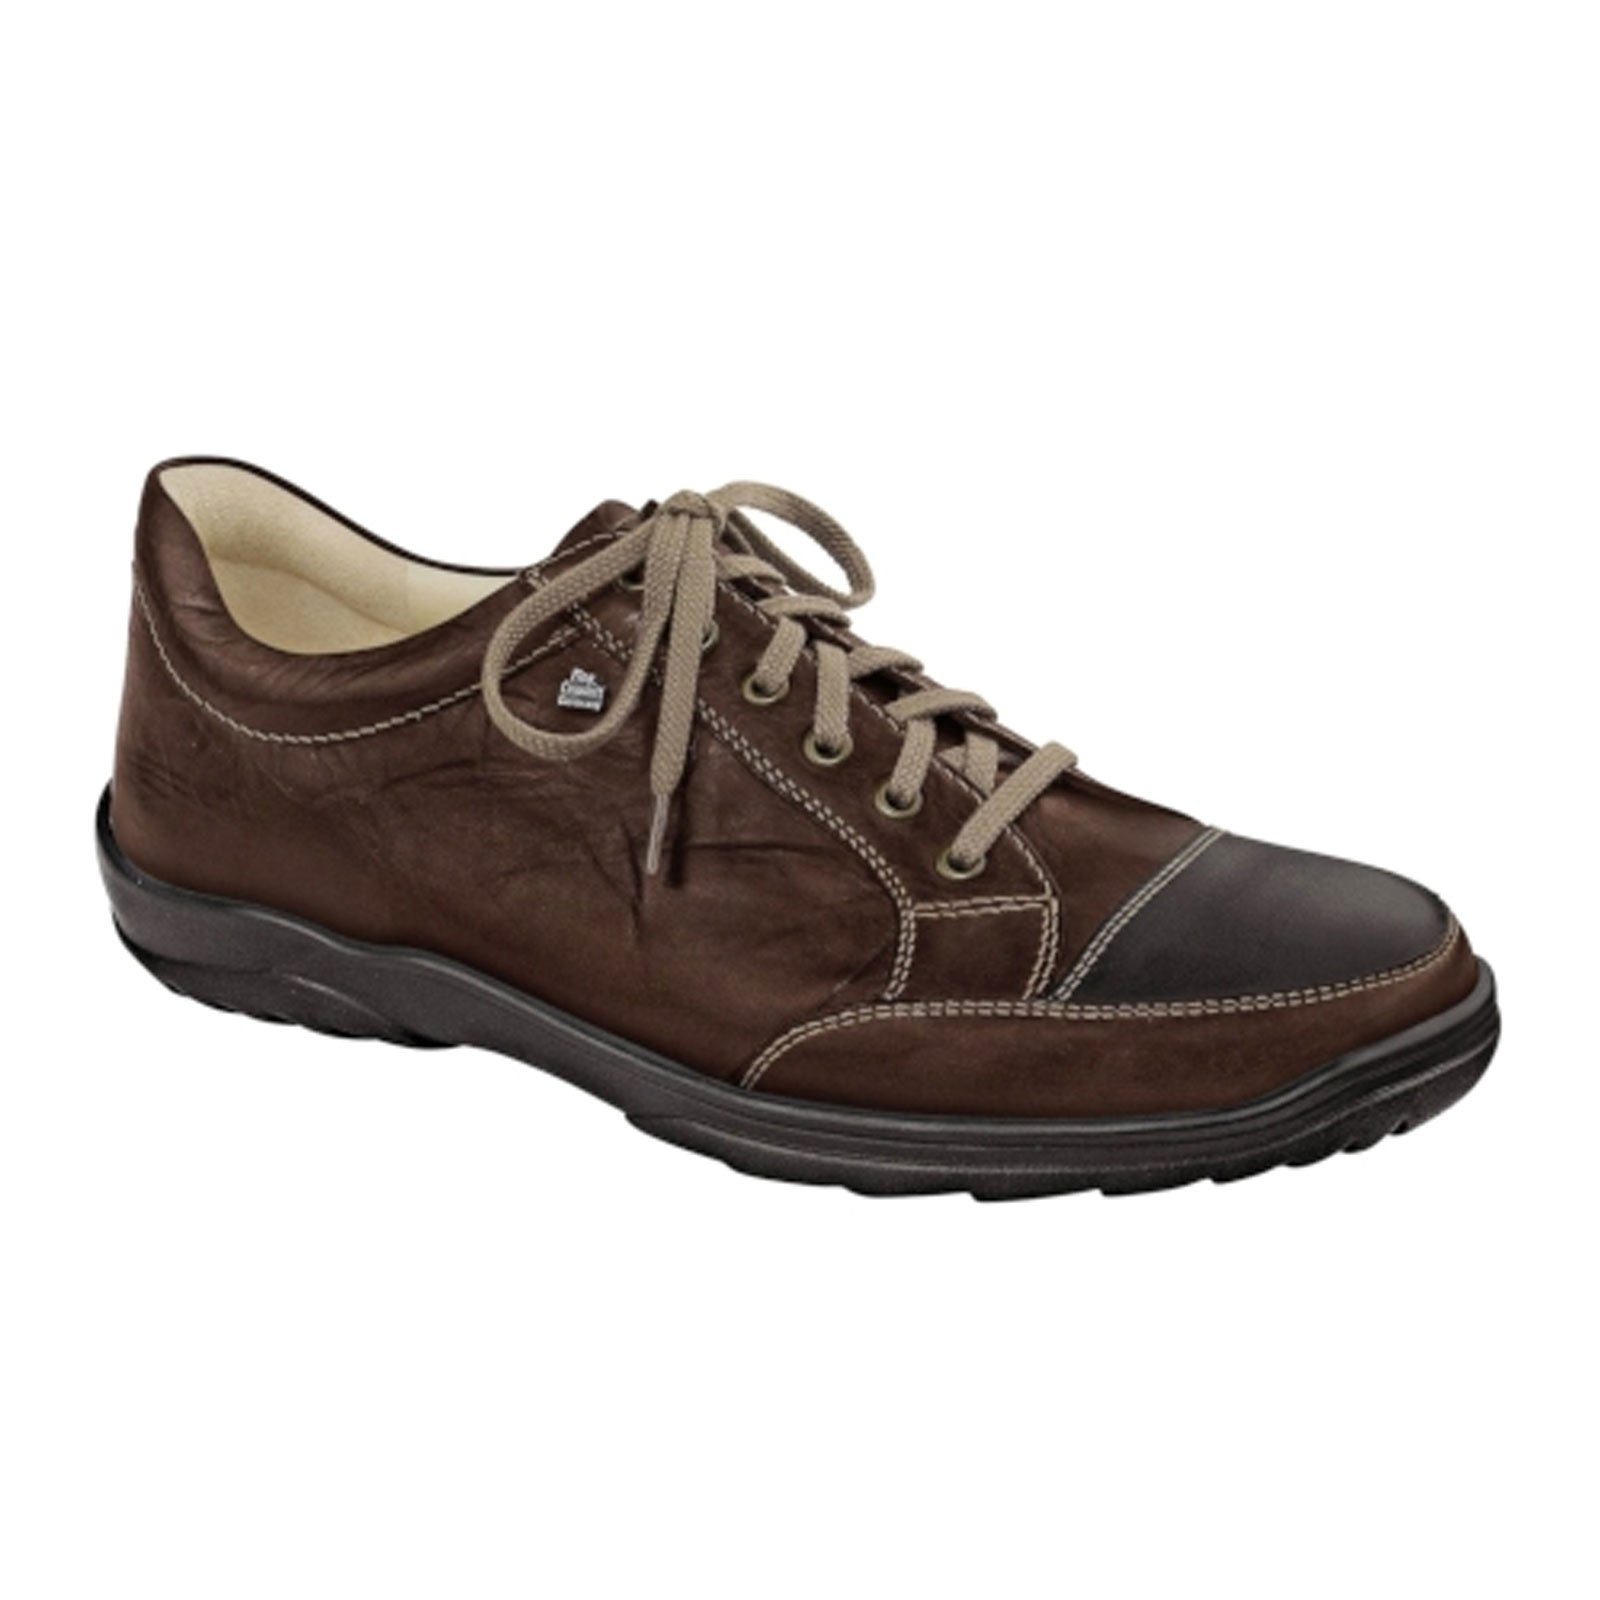 Finn Comfort Alamo (Men) - Cigar Dress/Casual|Lace Ups - The Heel Shoe Fitters